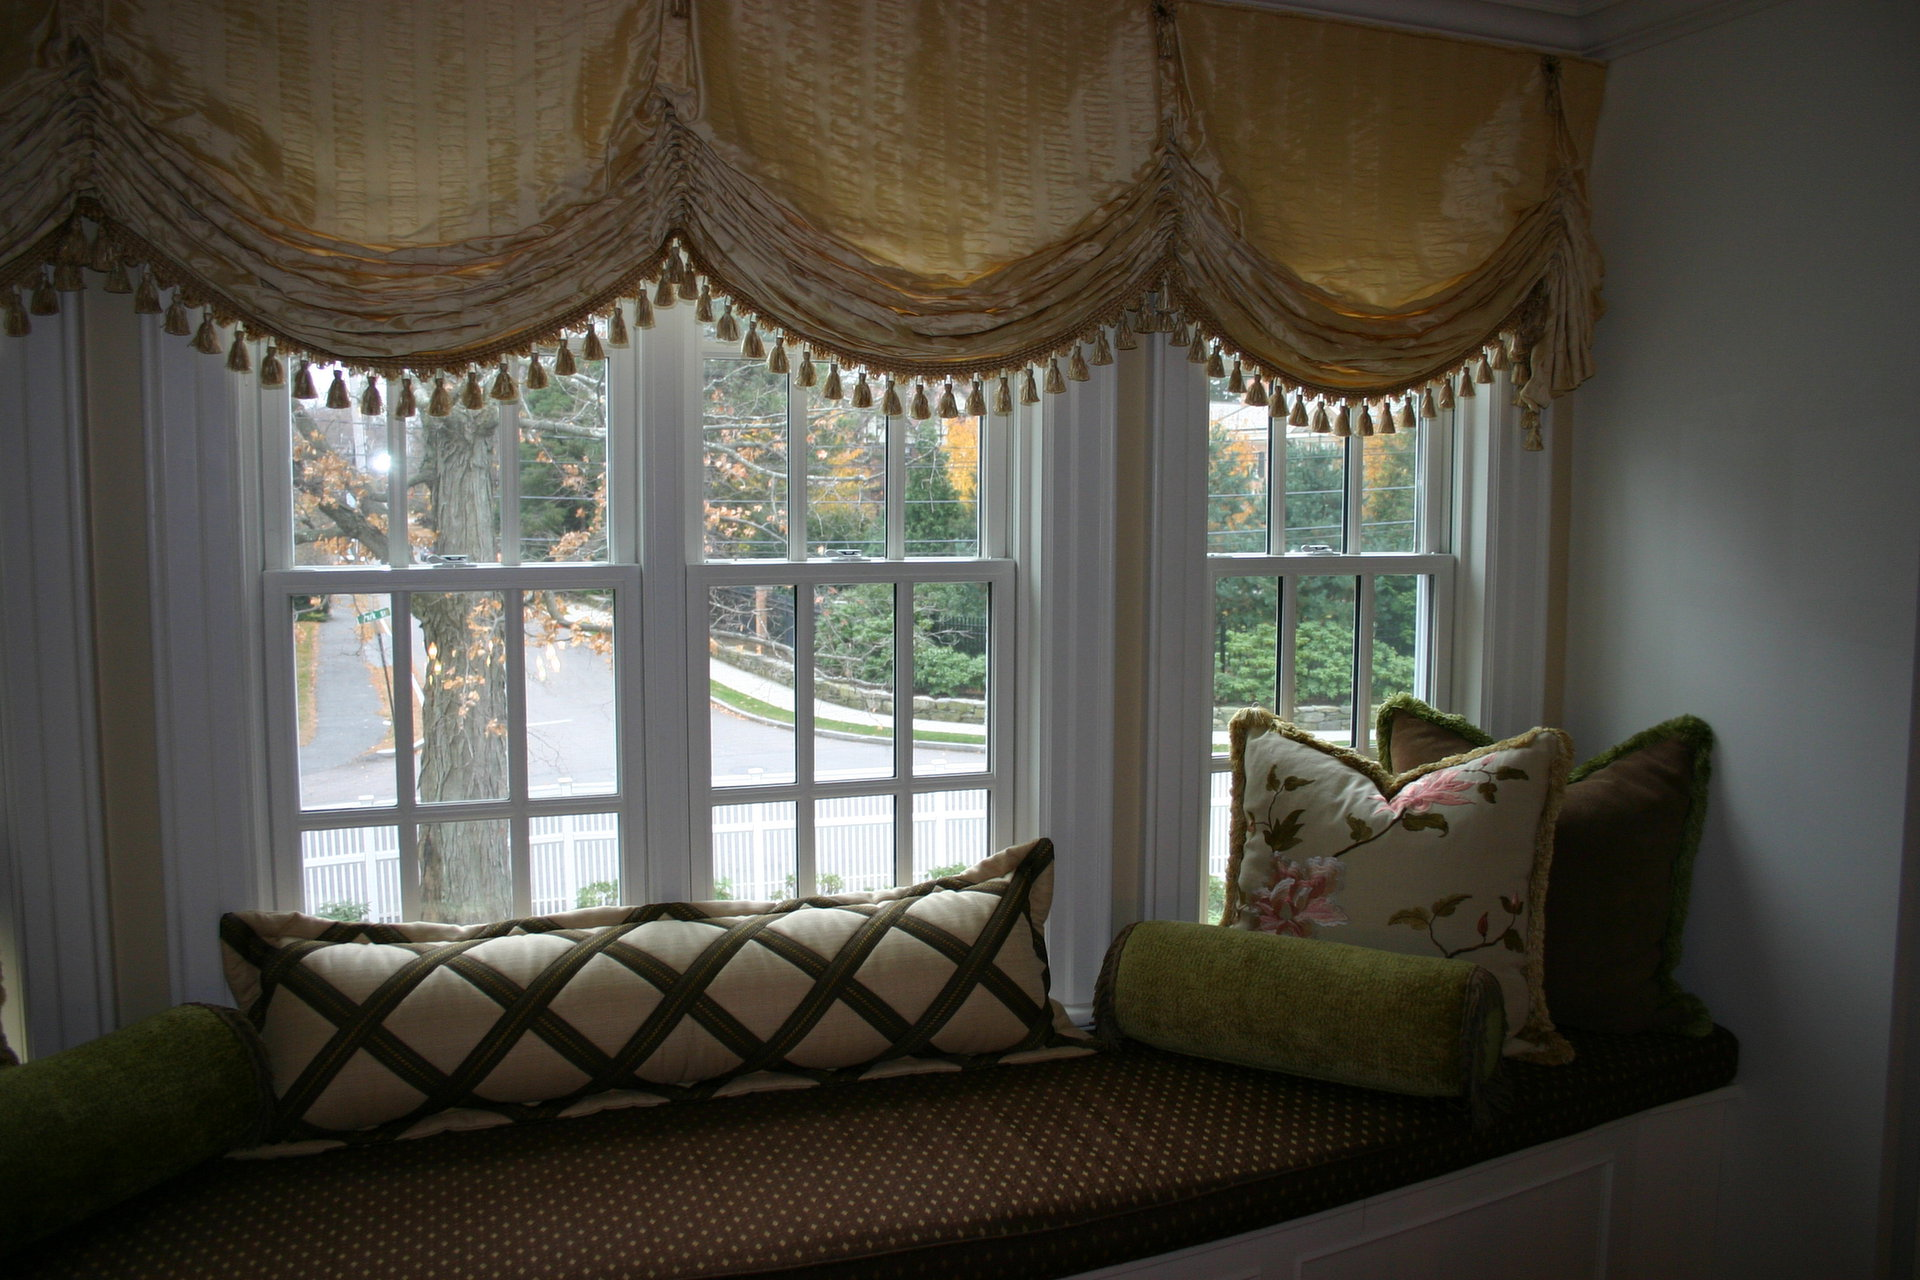 Jw custom window designs window seat pillows Custom design windows